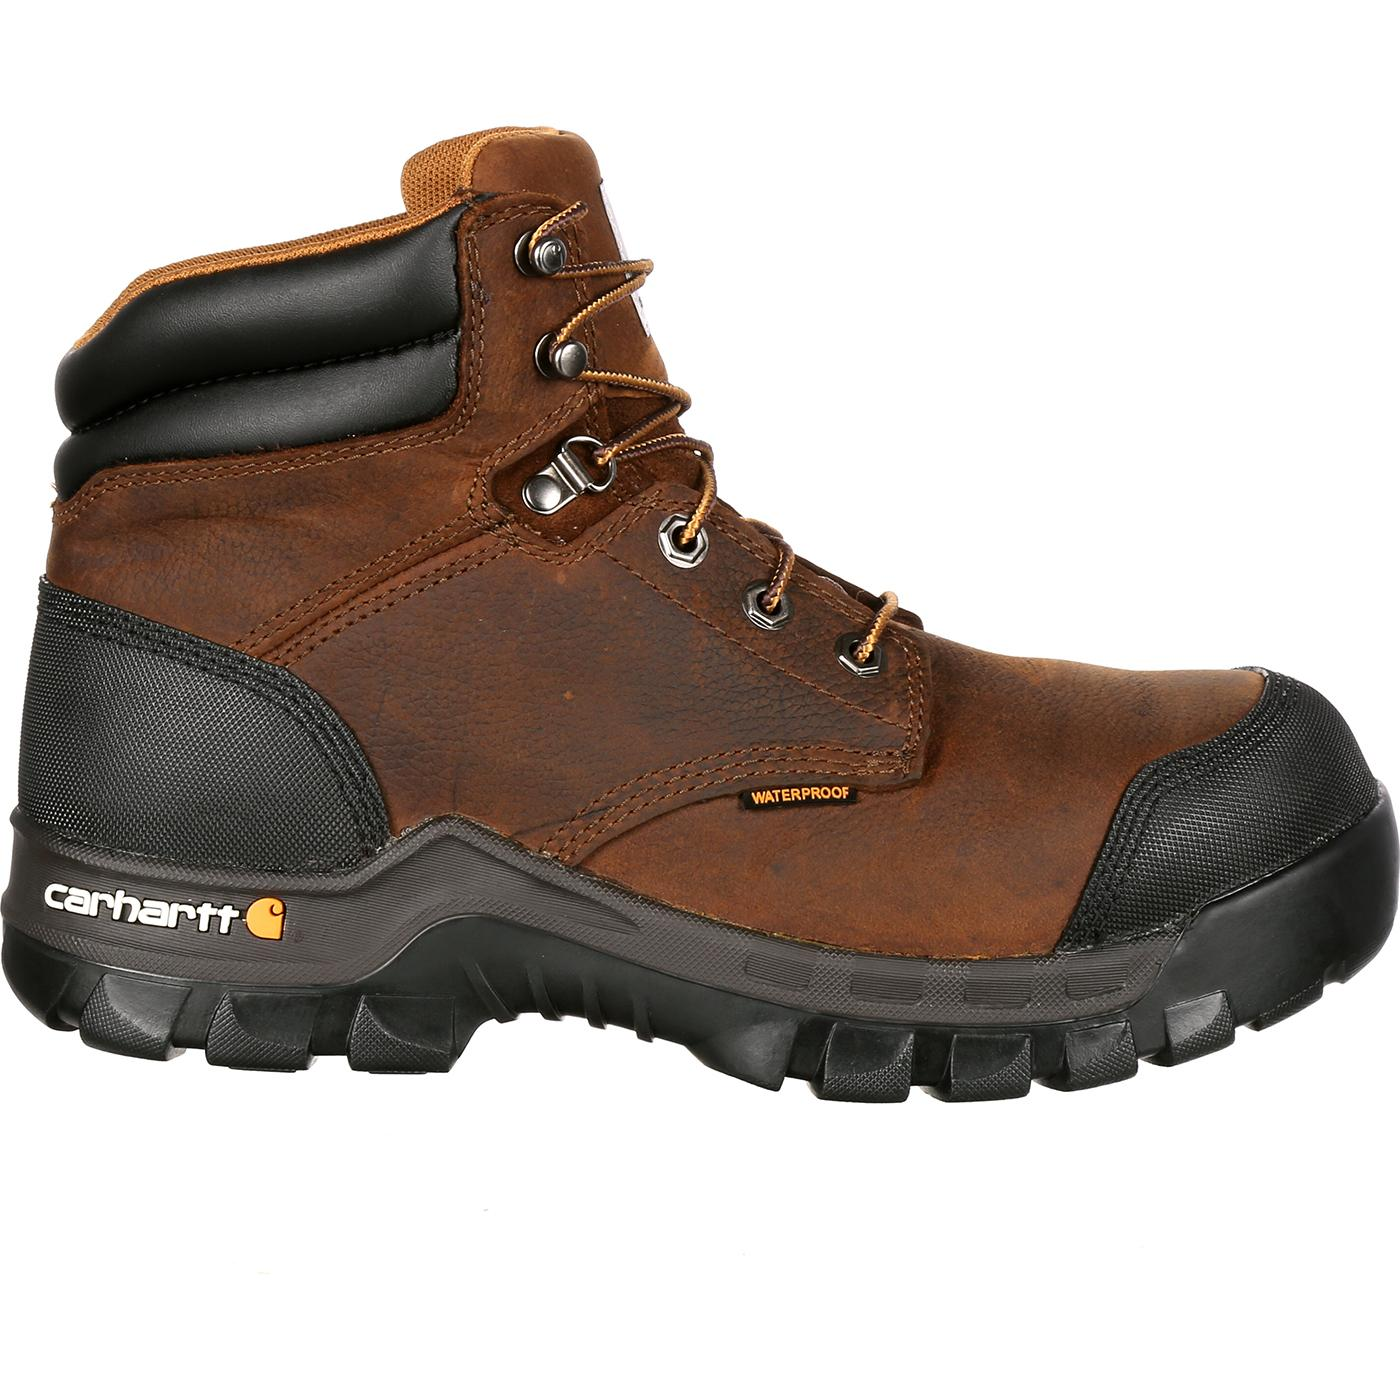 Carhartt Men S Hiker Waterproof Work Shoes